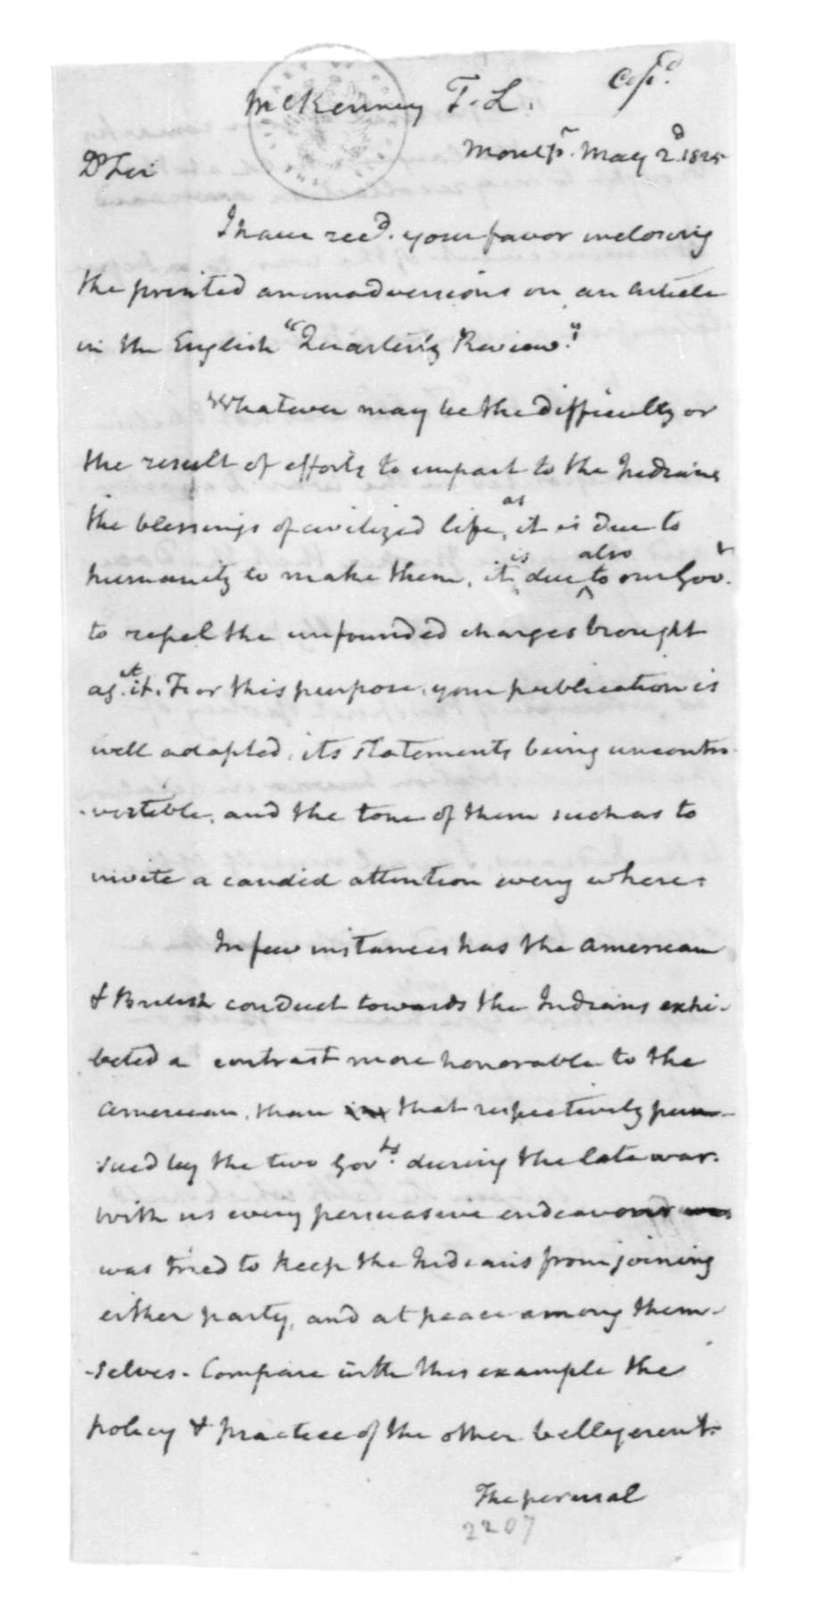 James Madison to Thomas L. McKenney, May 2, 1825.